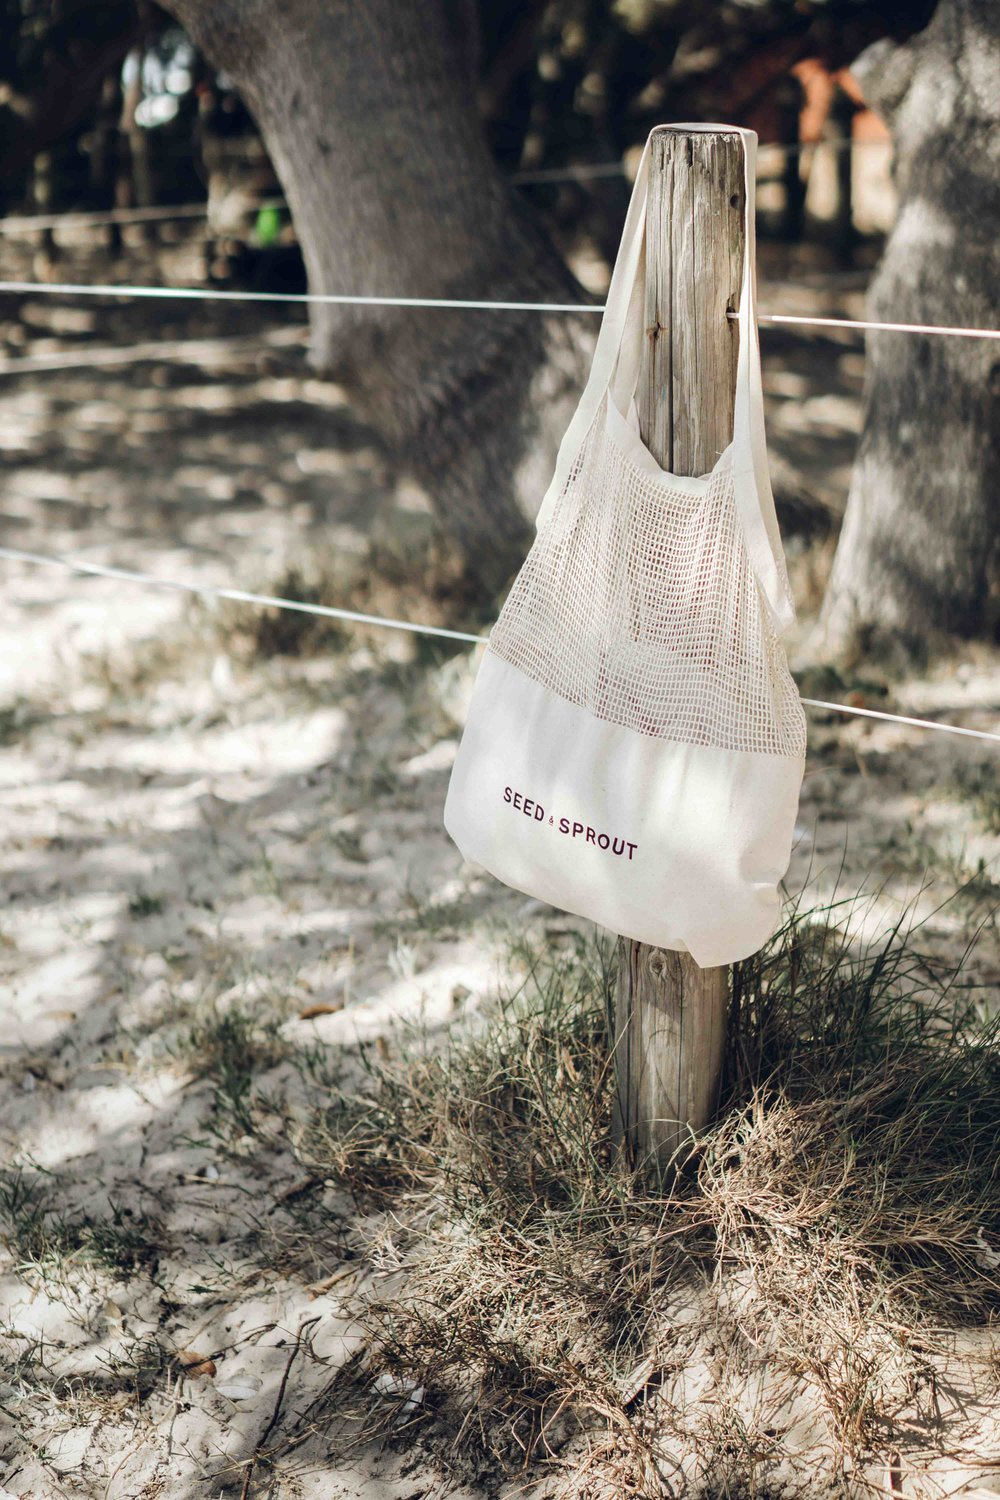 Keira-Mason-Seed-and-sprout-cotton-bag.jpg